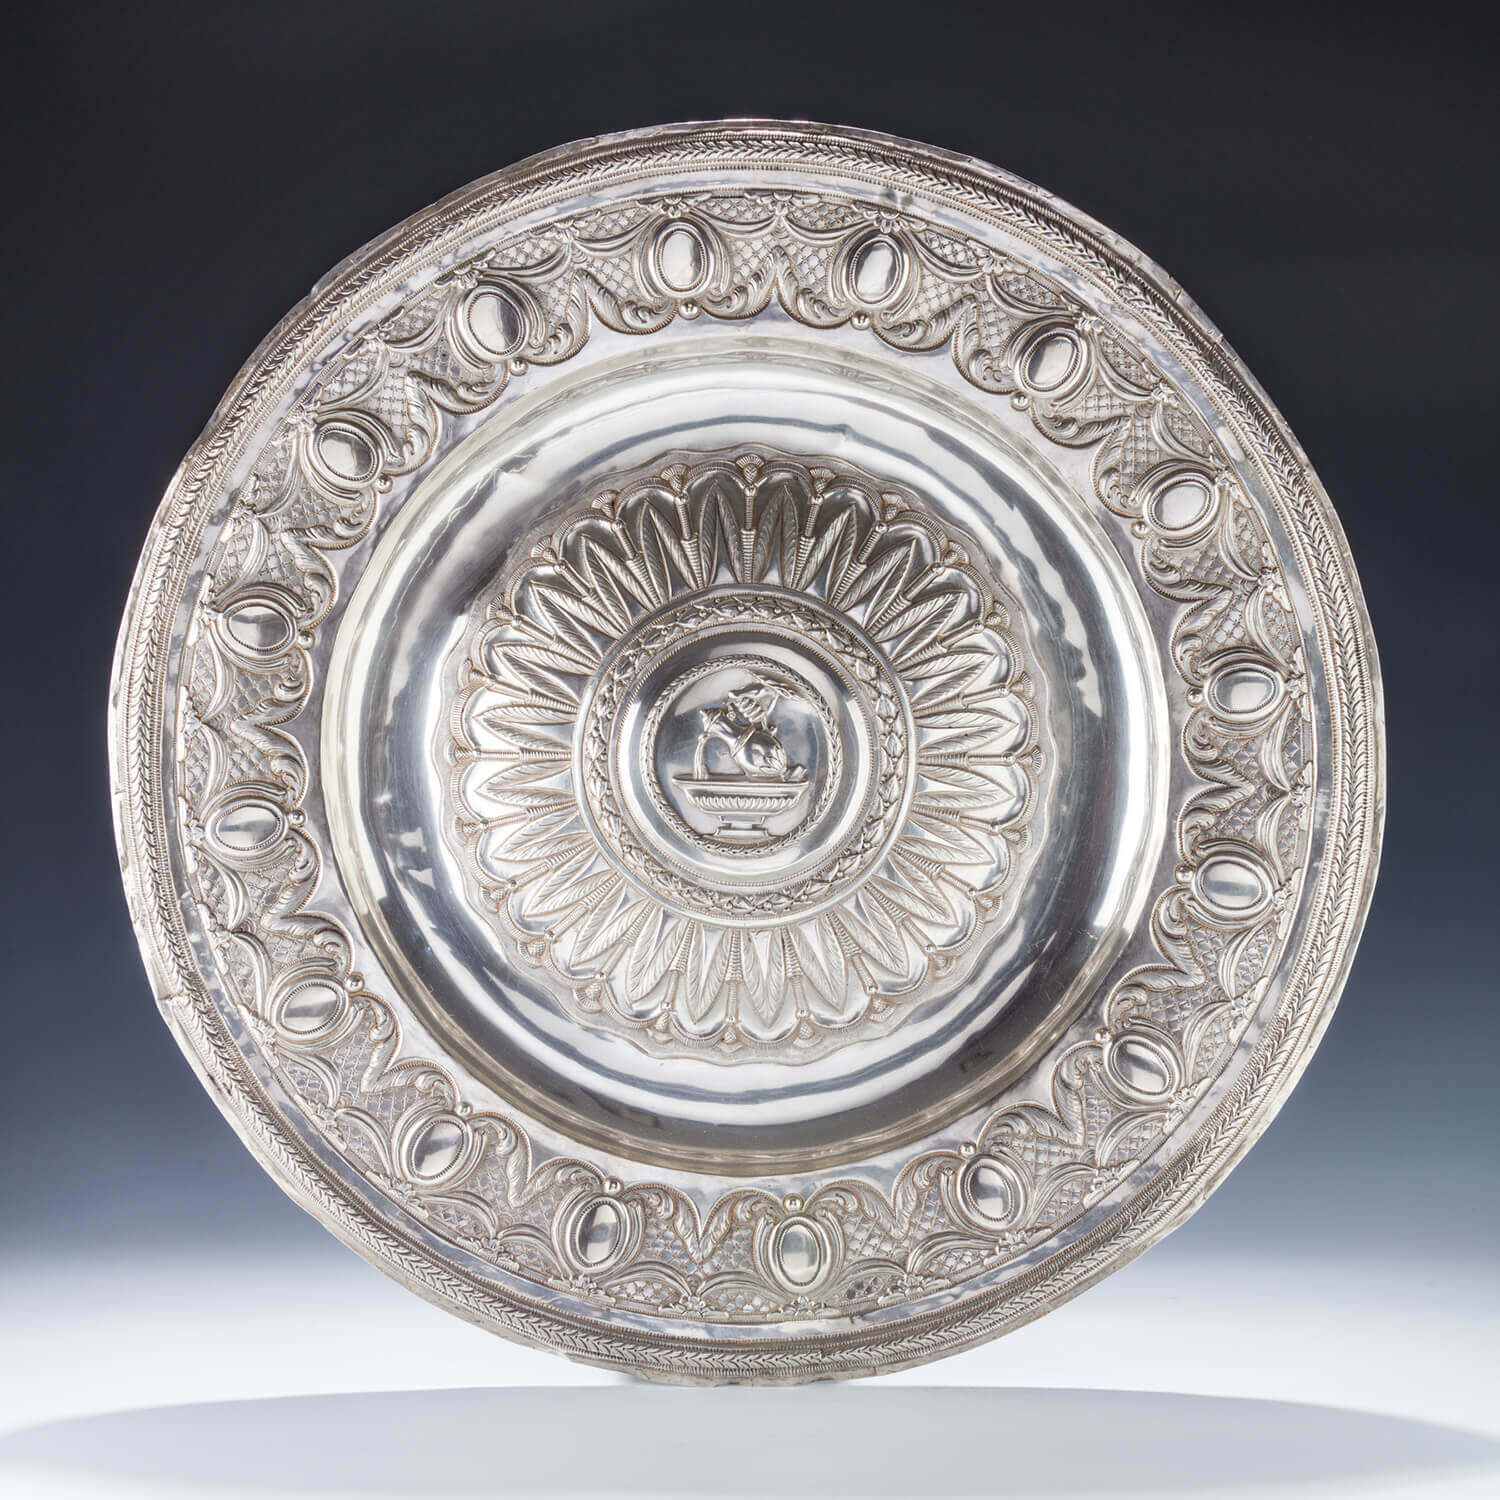 105. A LARGE SILVER BASIN TRAY BY ANDREA STUARDI